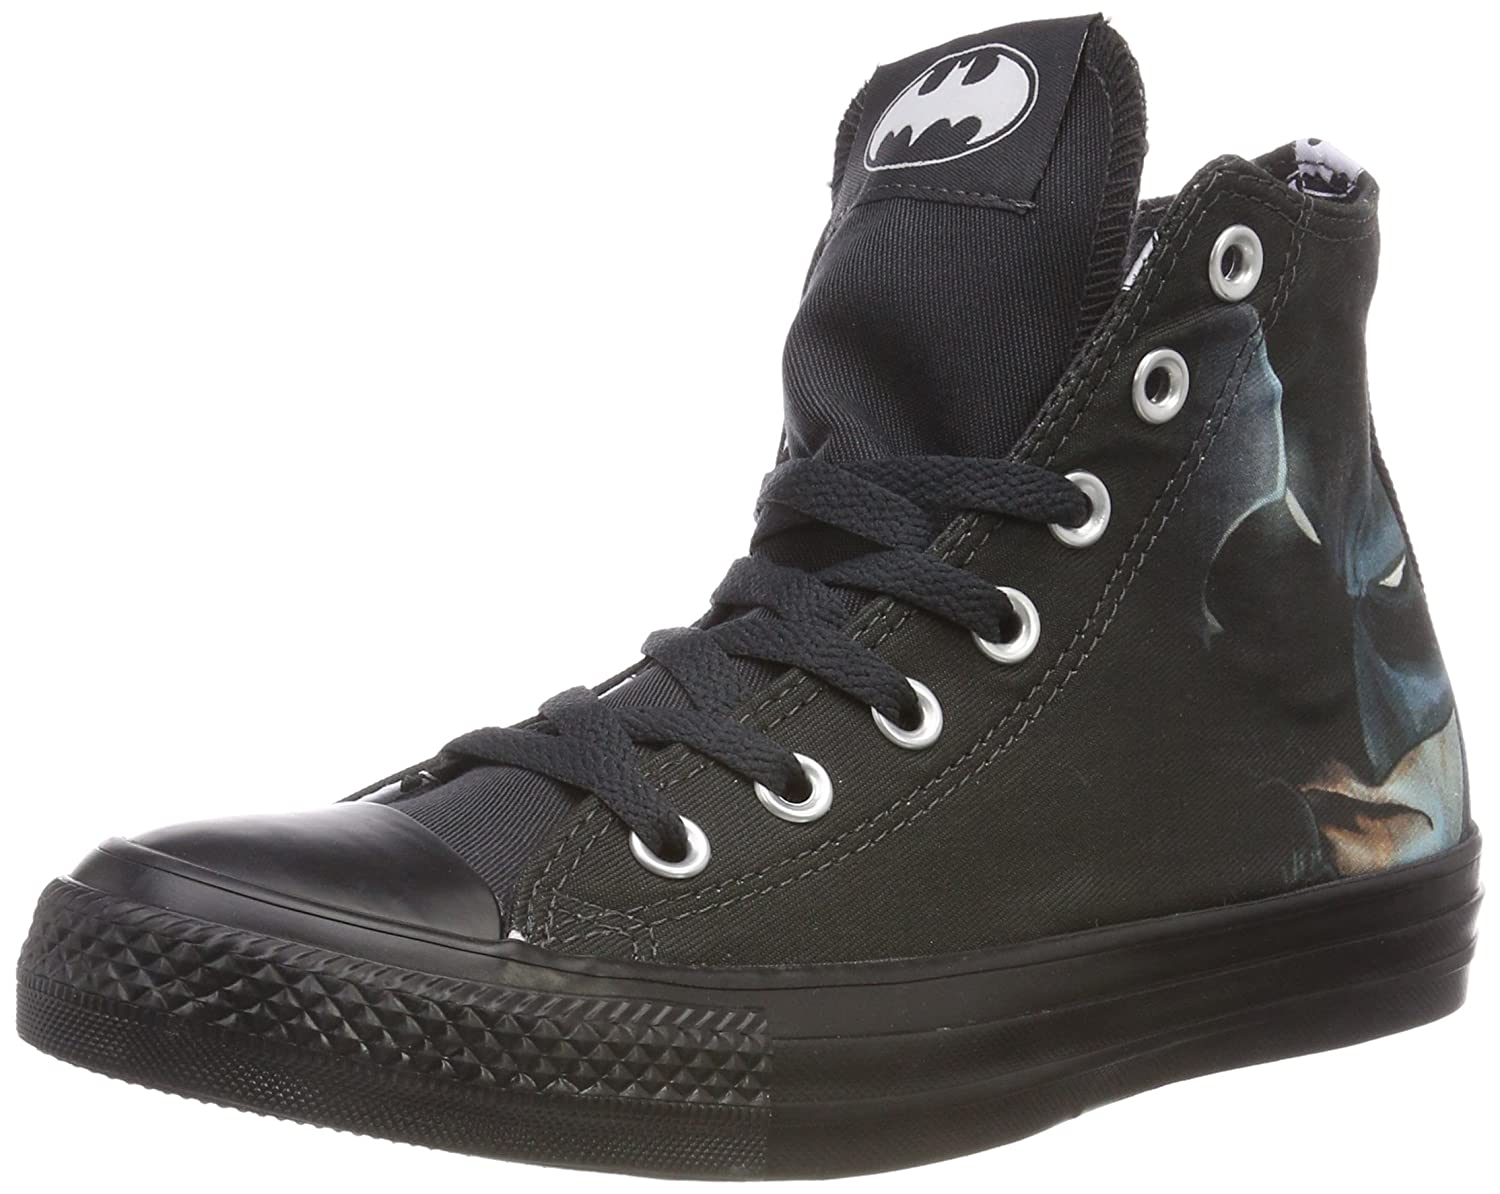 Converse DC Comics Chuck Taylor All Star Sneakers B078W2R59P Mens 7.5/Womens 9.5|Batman Black/White/Black 001 9533